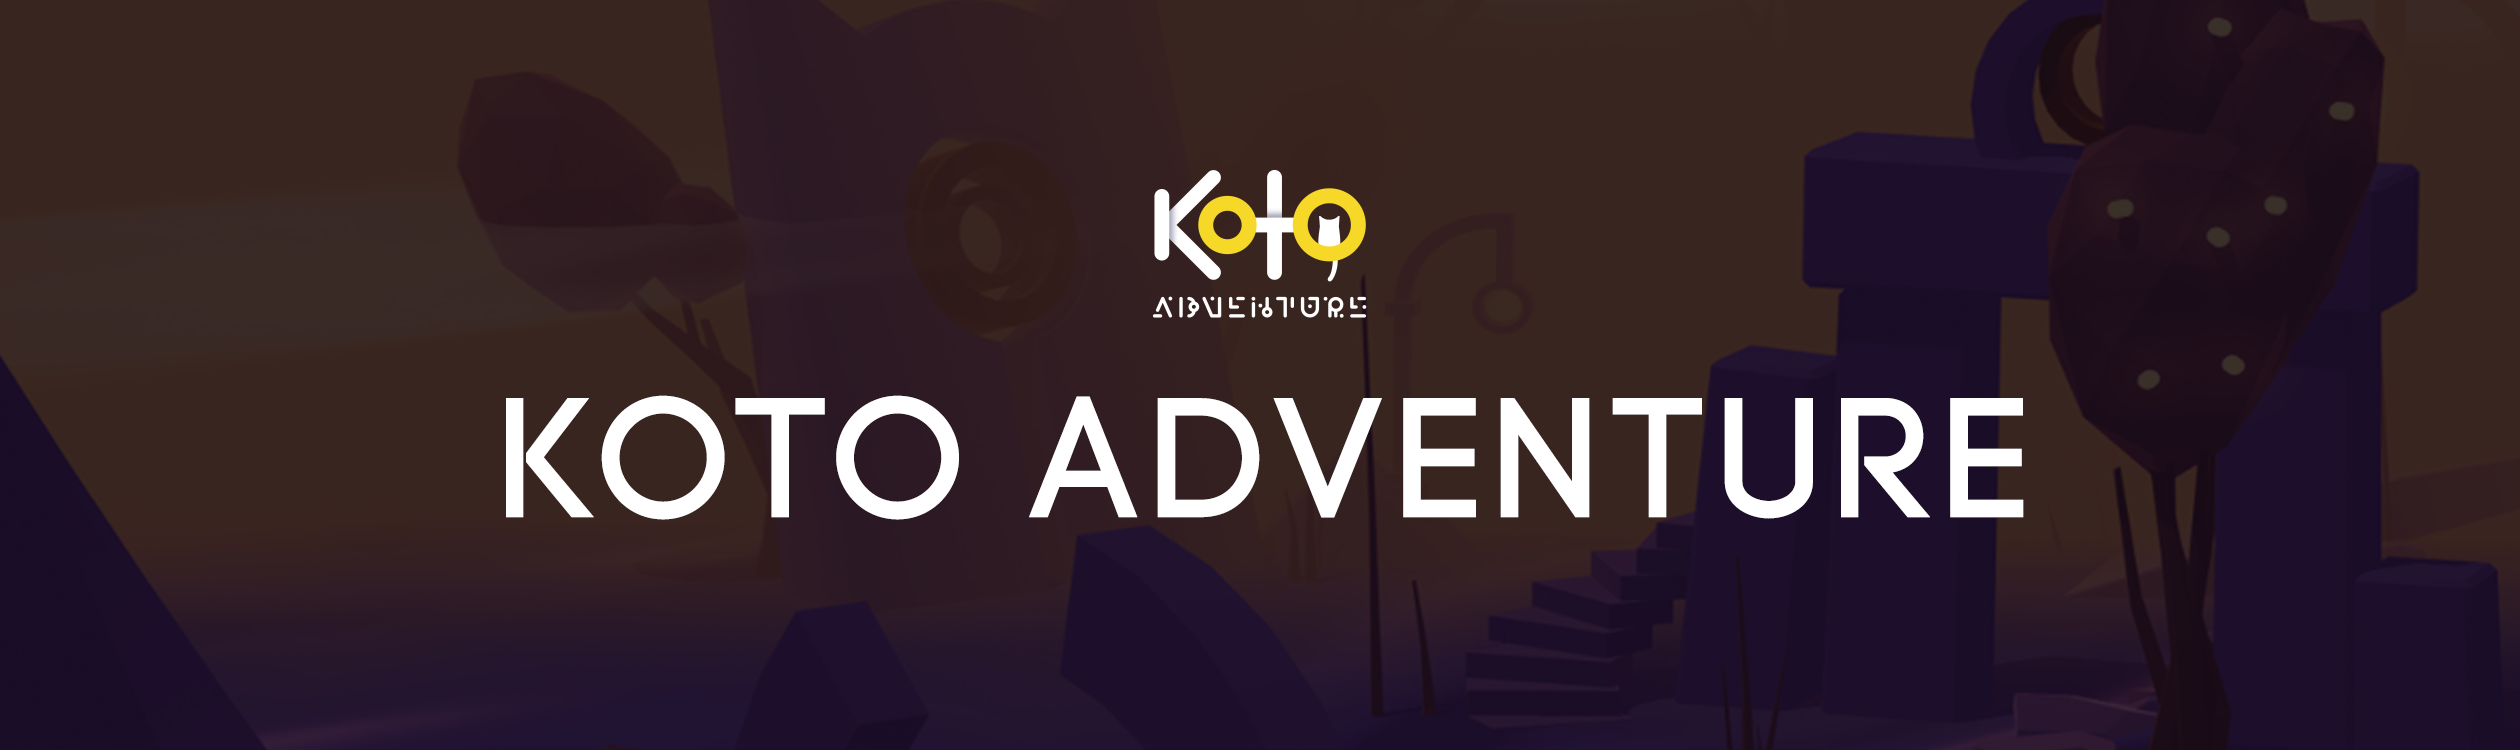 Koto Adventure by Nord Unit announce